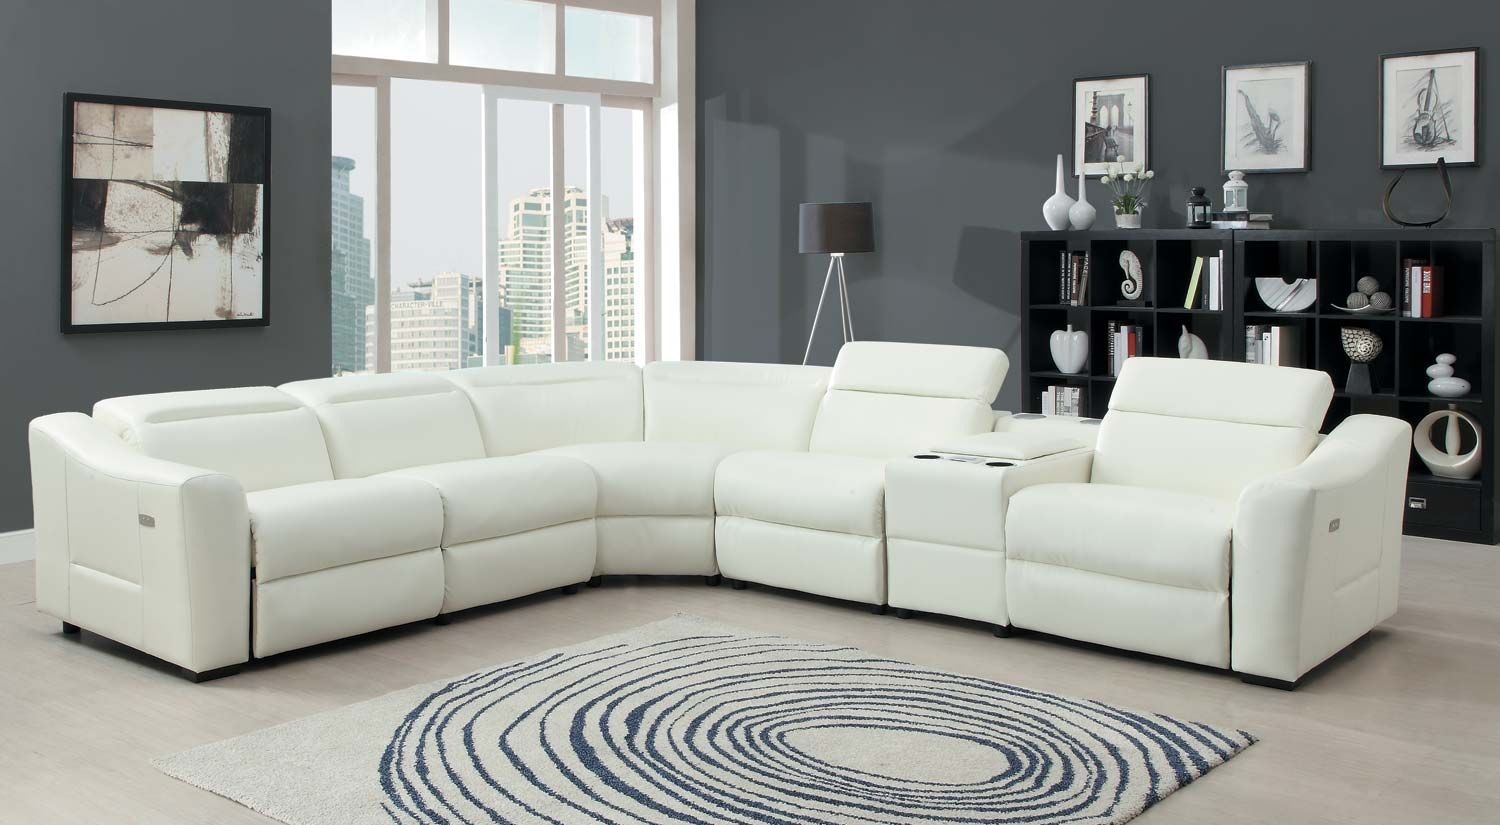 Modern Bonded Leather Sectional Sofa With Recliners Lav Selv Sofabord Trae Homelegance Instrumental Set White Match The Ultra Collection Will Allow You Your Family And